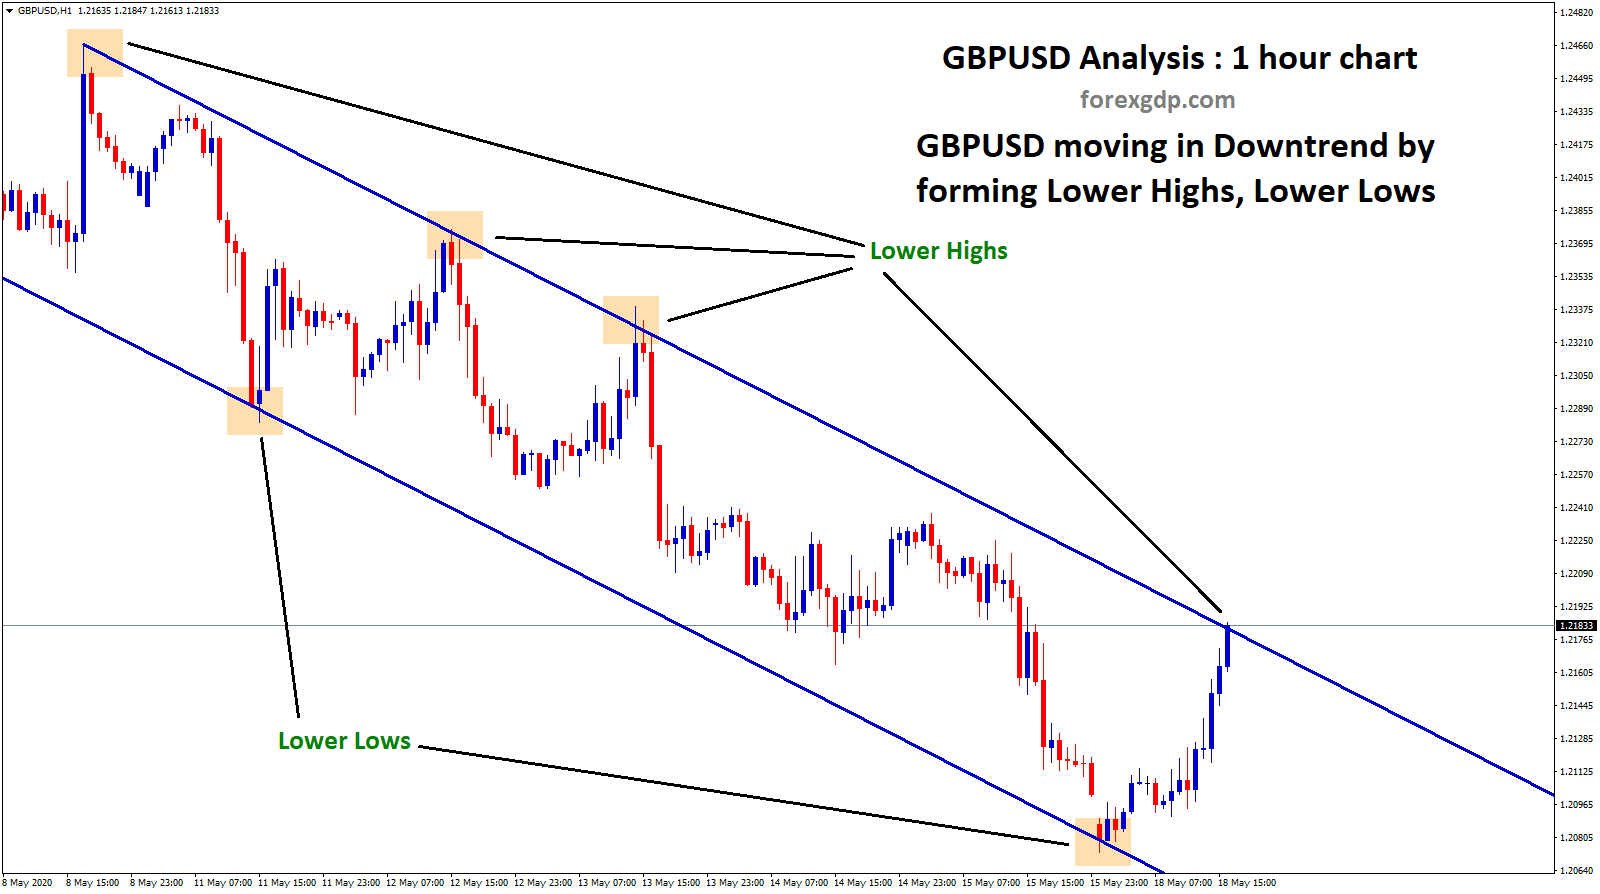 GBPUSD in downtrend forming lower highs lower lows